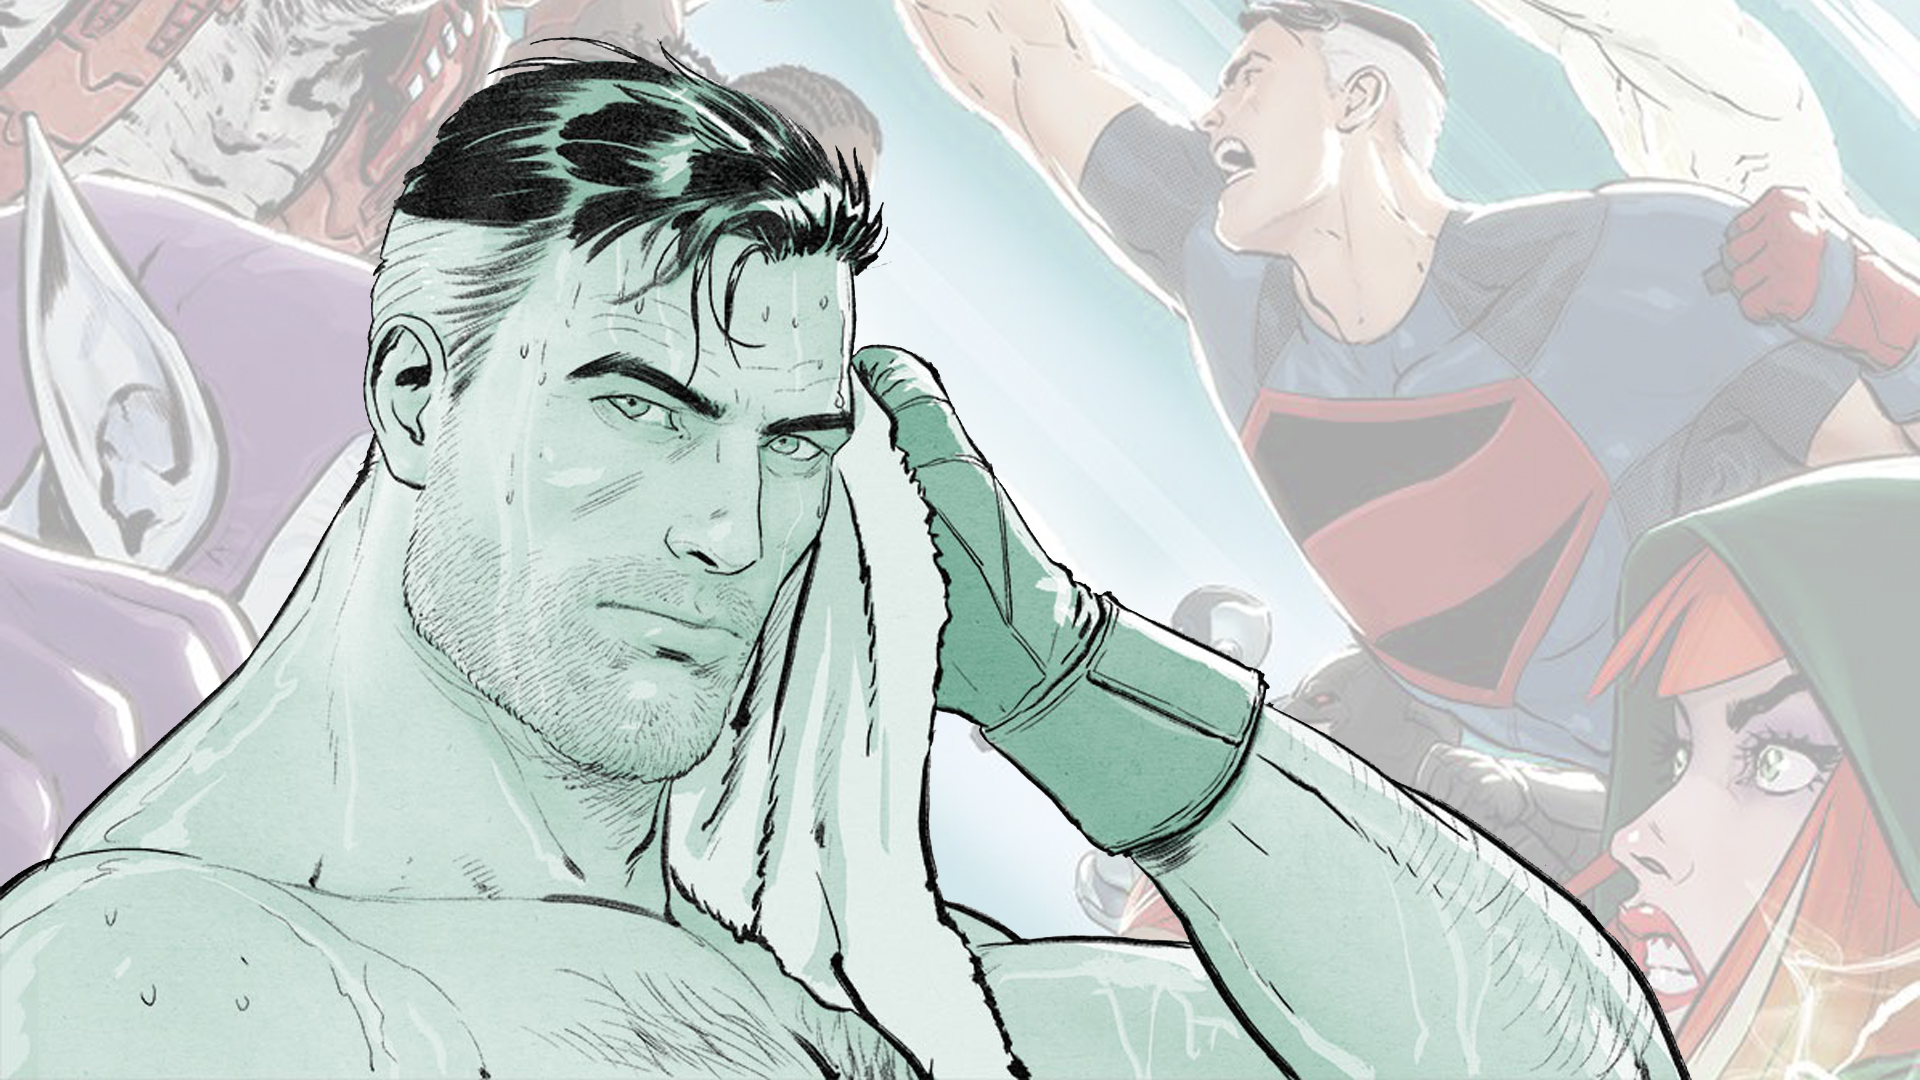 Superman is shirtless and sweaty, looking at the camera with a towel to his face.